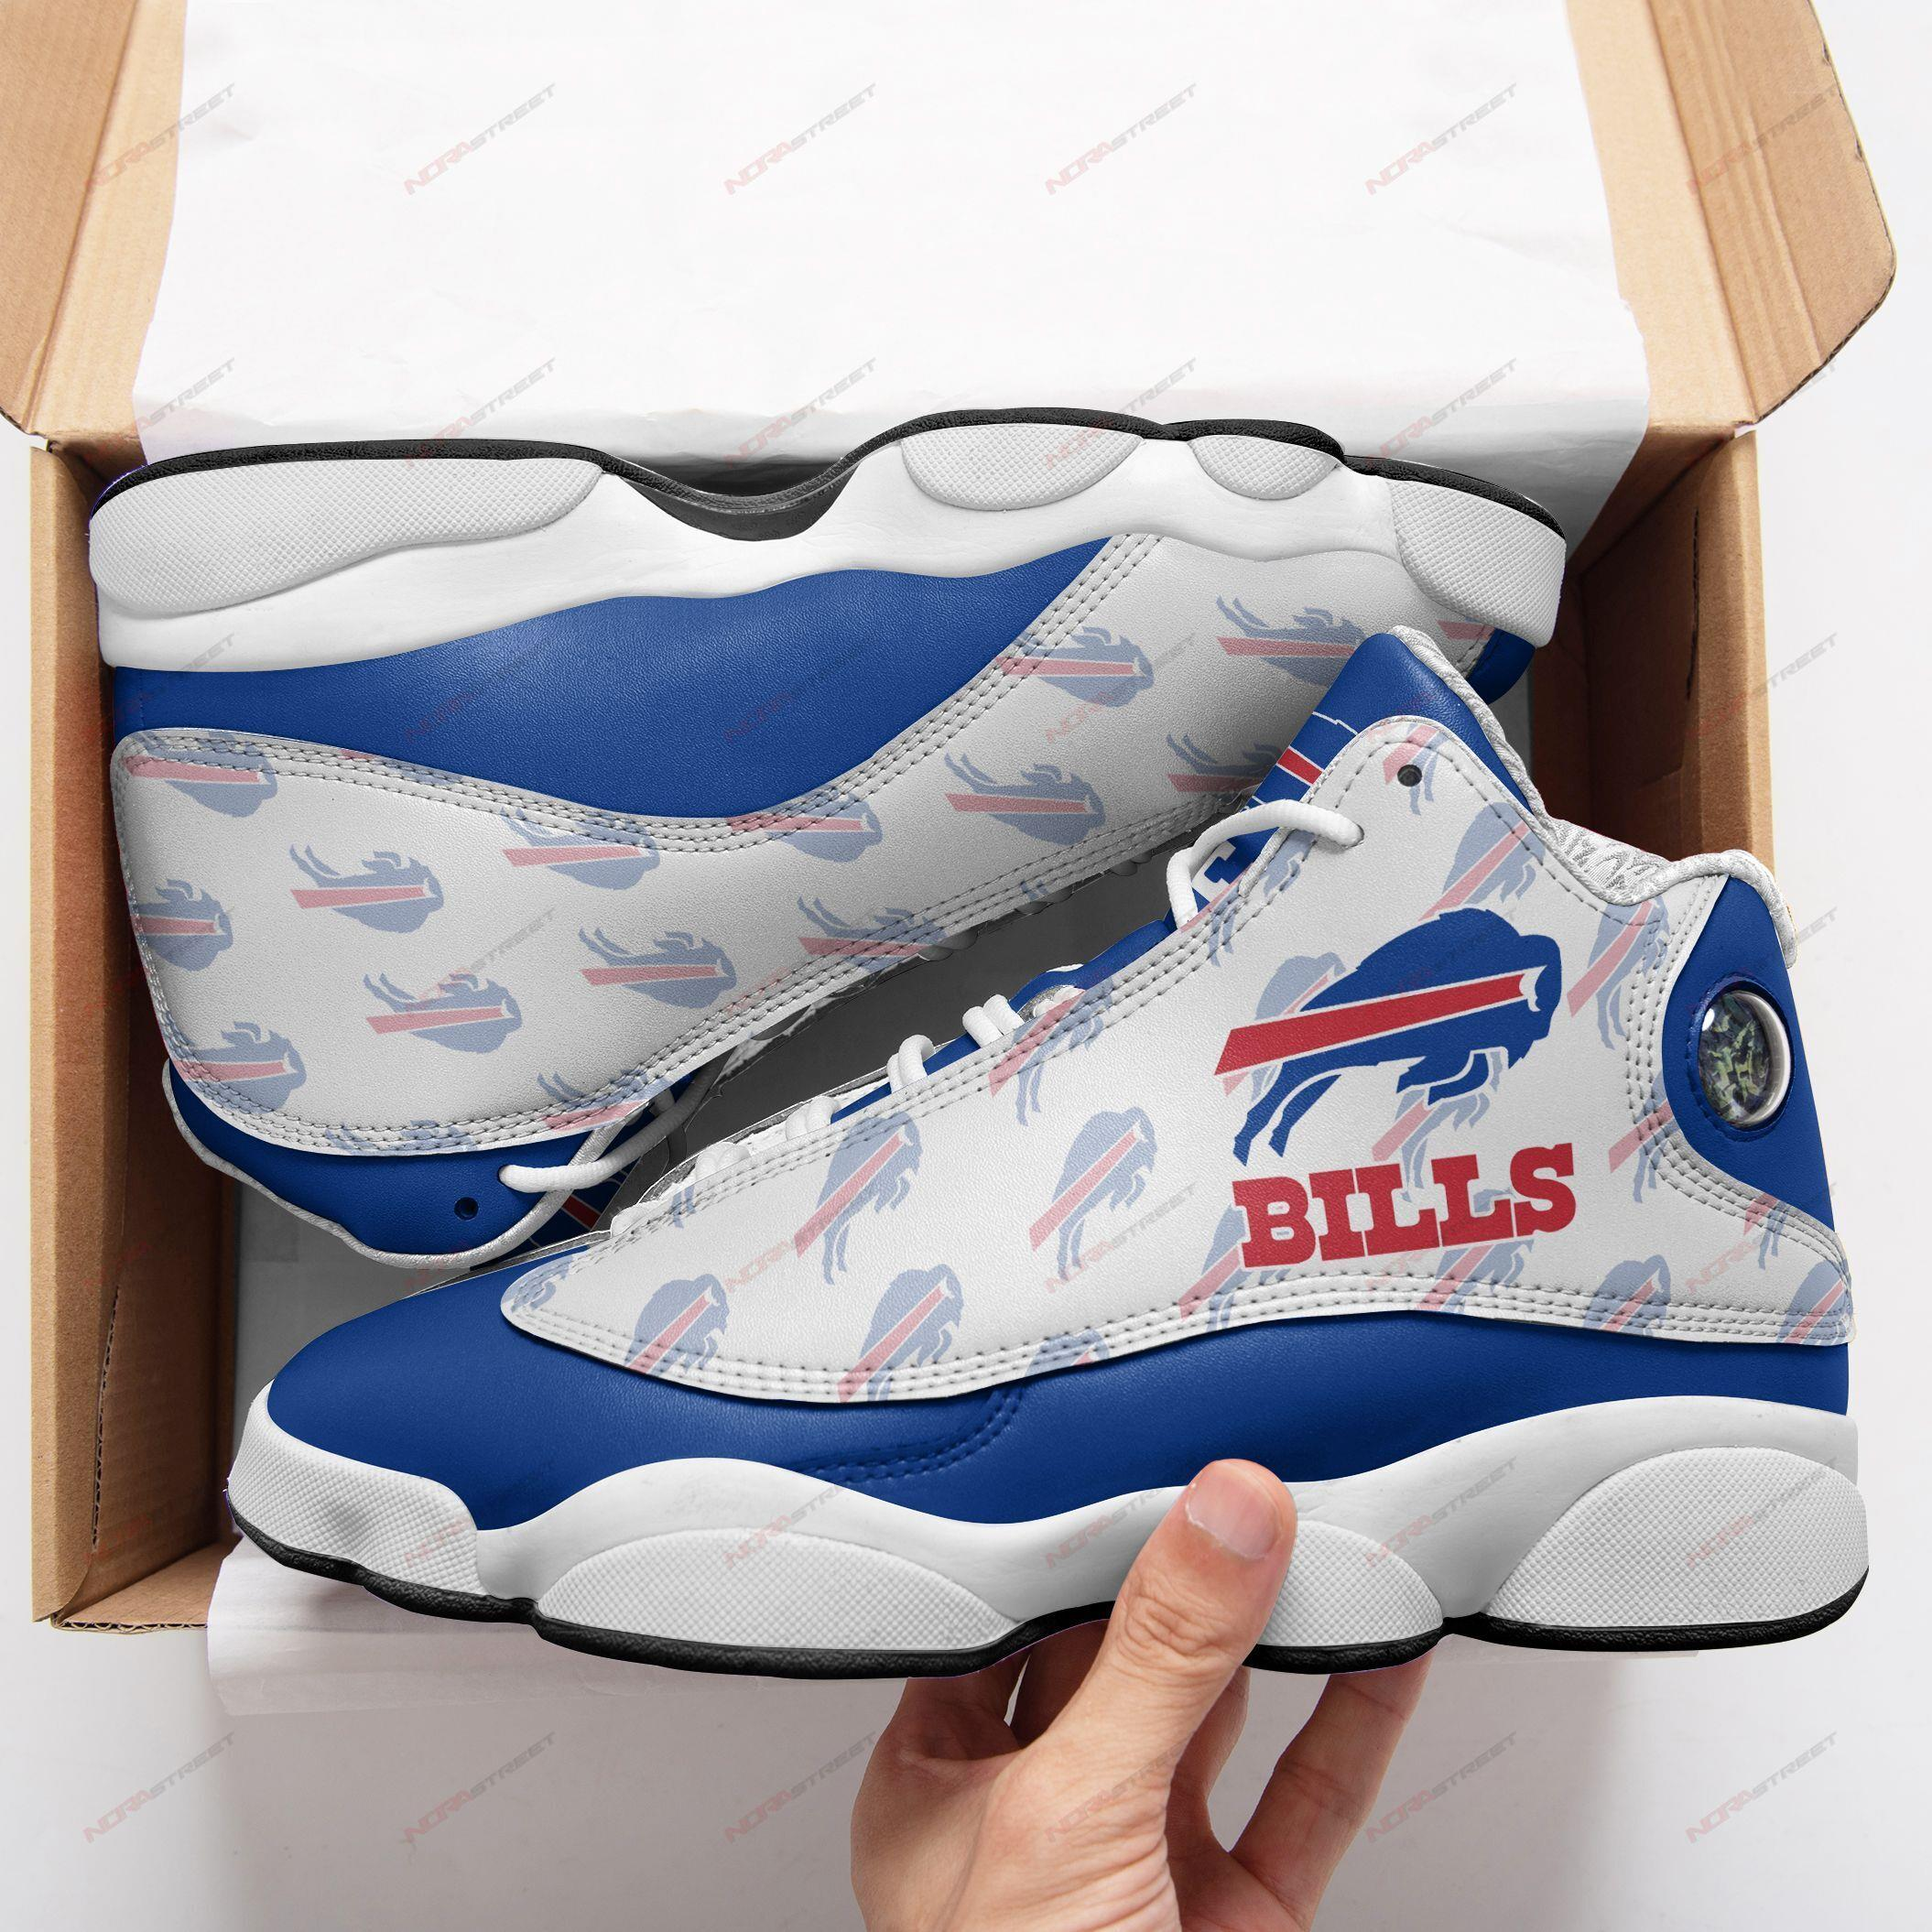 Buffalo Bills Air Jordan 13 Sneakers Sport Shoes Plus Size